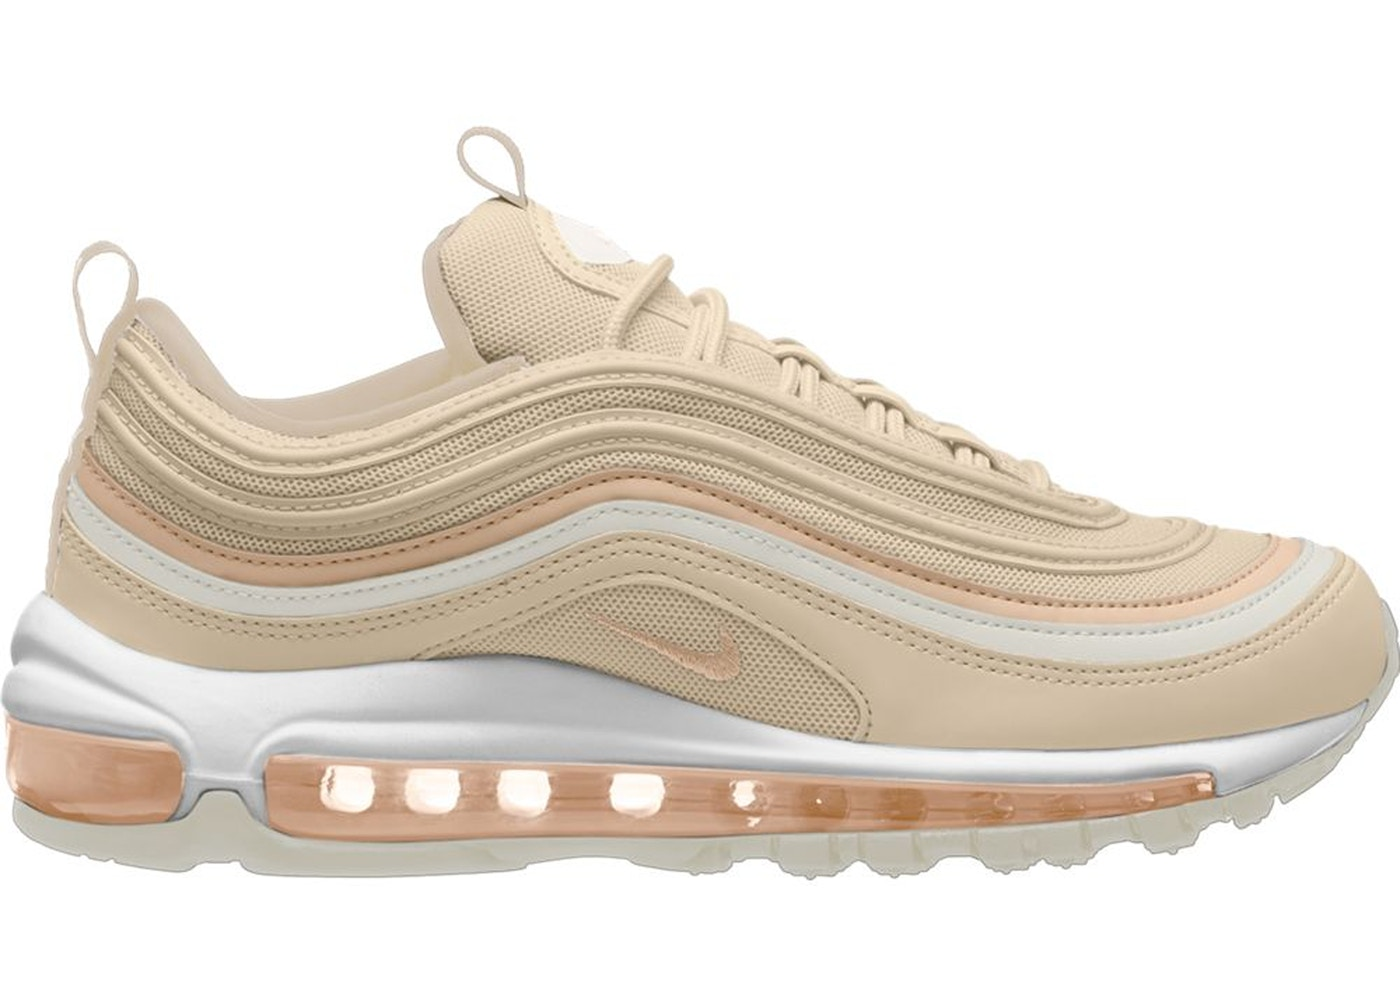 Air Max 97 Guava Ice White (W) 921733 801